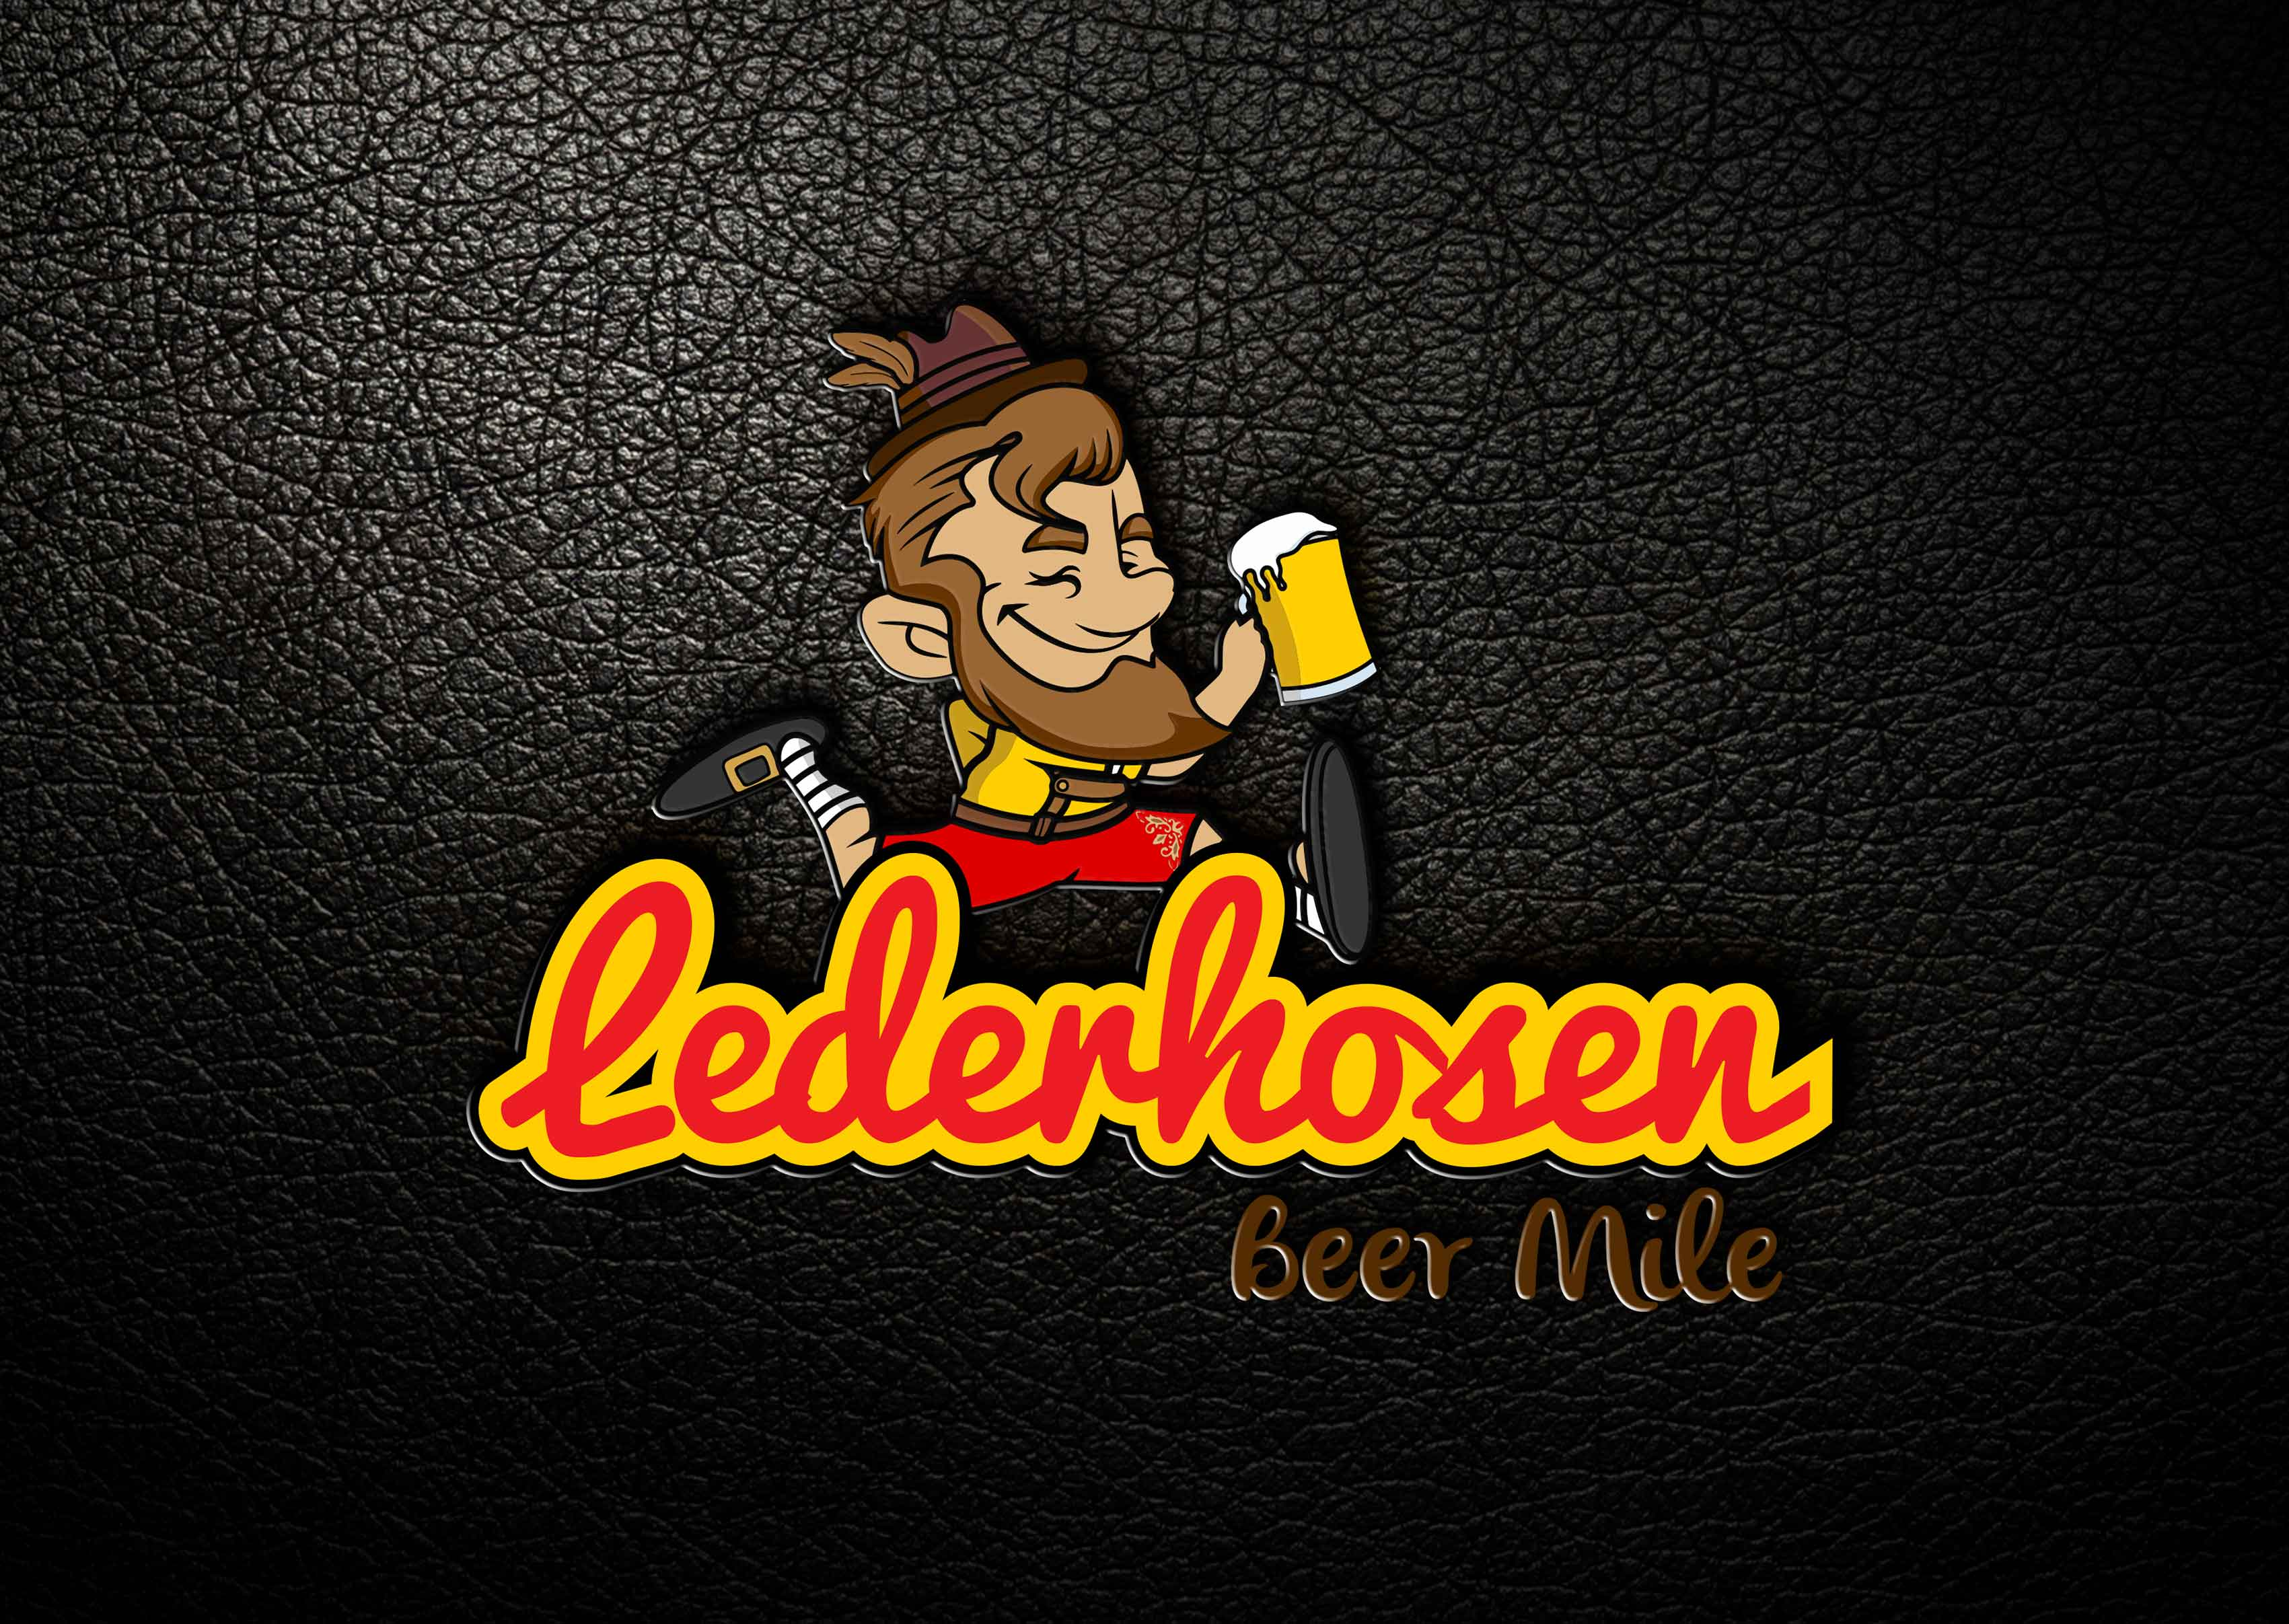 Lederhosen Beer Mile